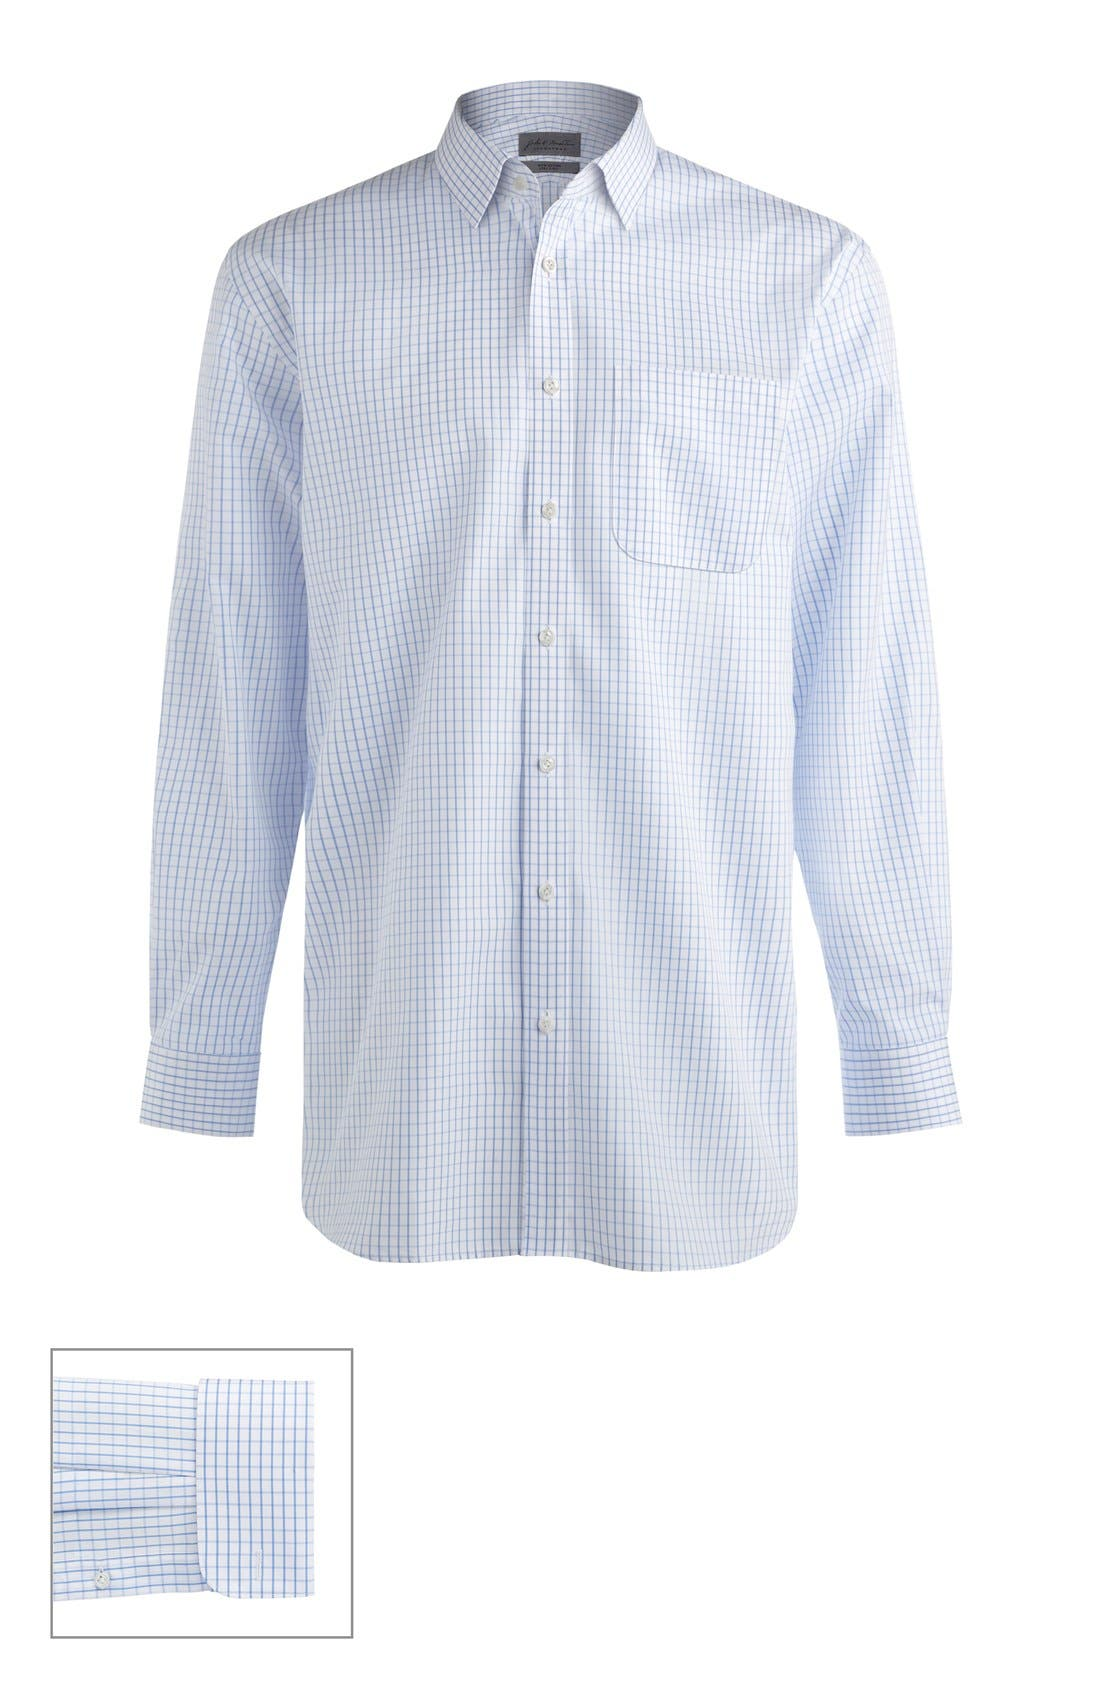 John W. Nordstrom® Made to Measure Classic Fit Straight Collar Dobby Plaid Dress Shirt